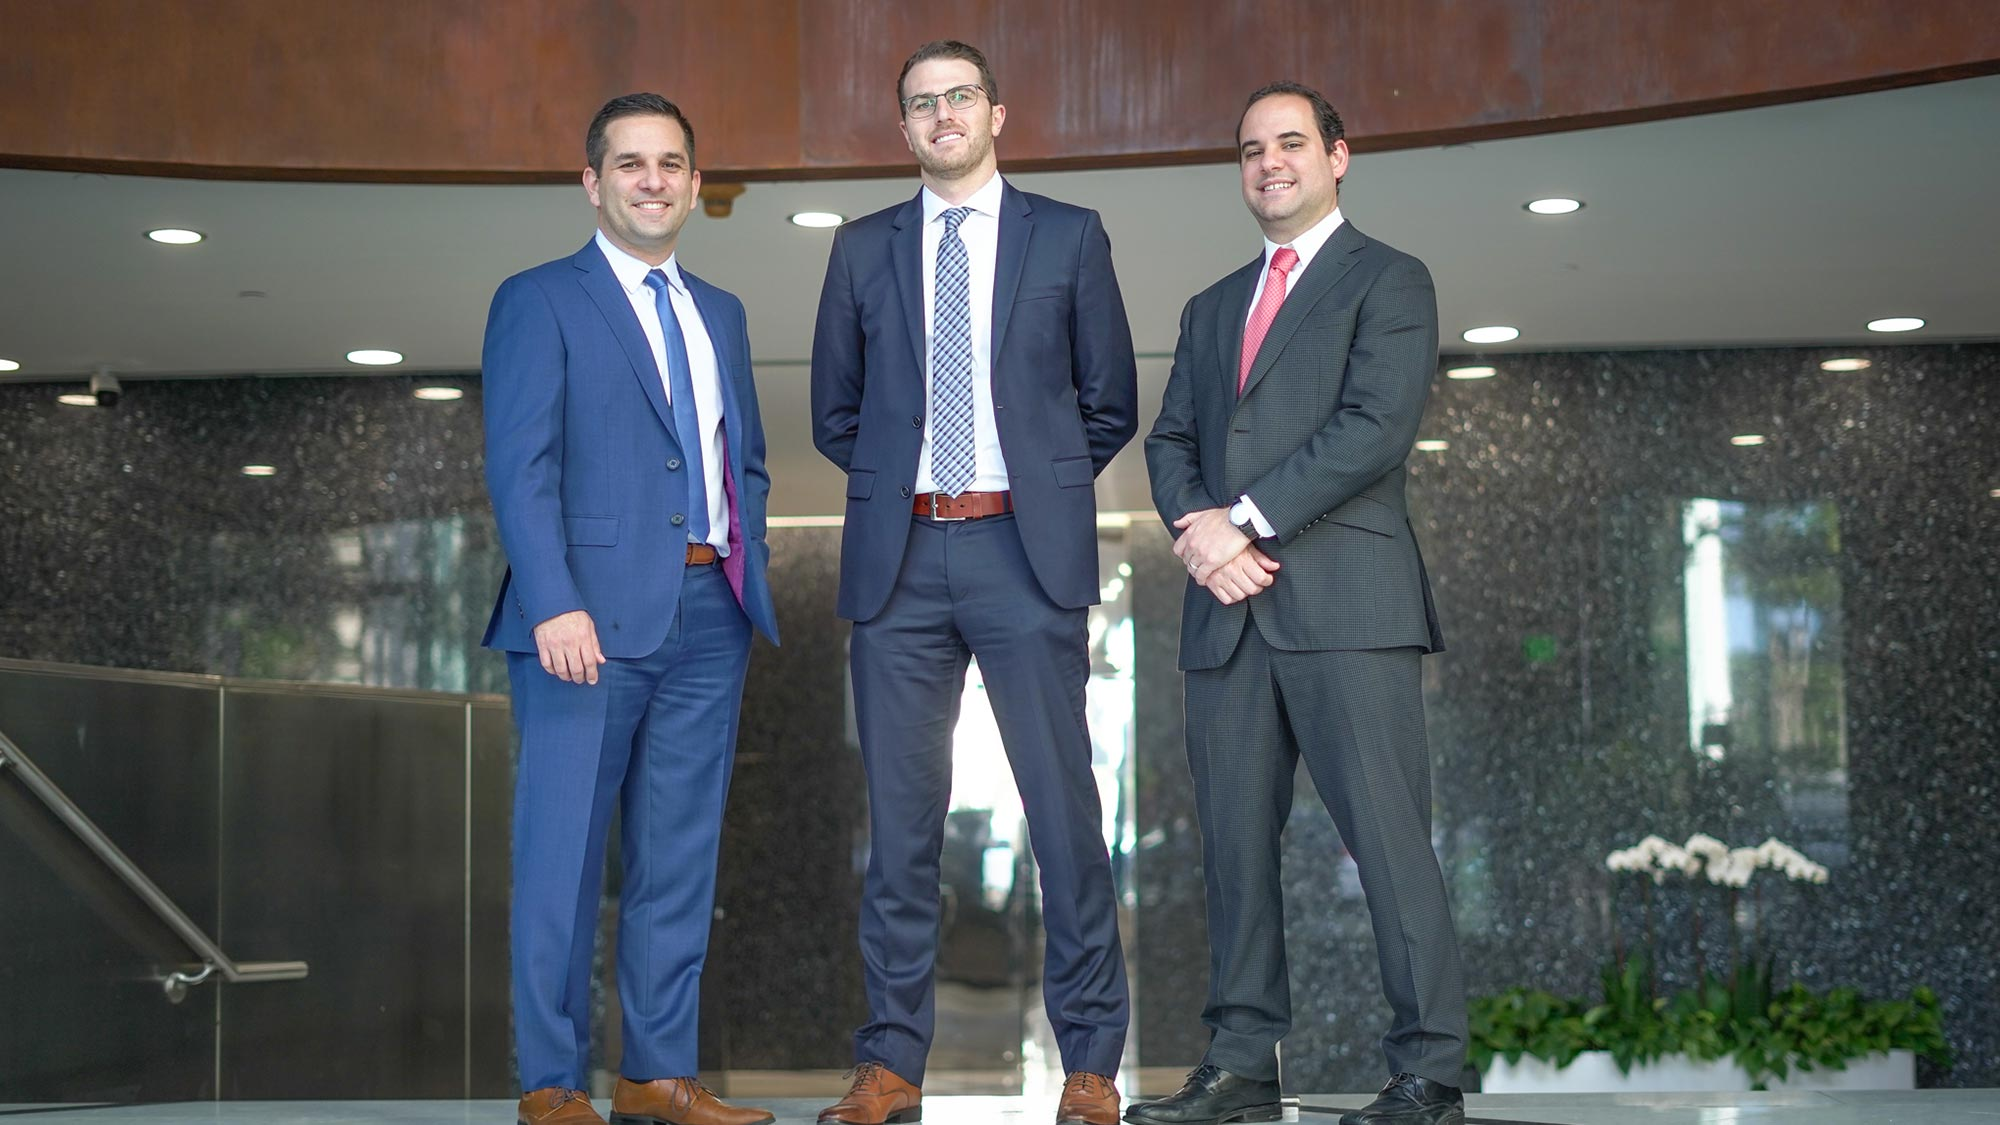 South Florida Civil Lawyers